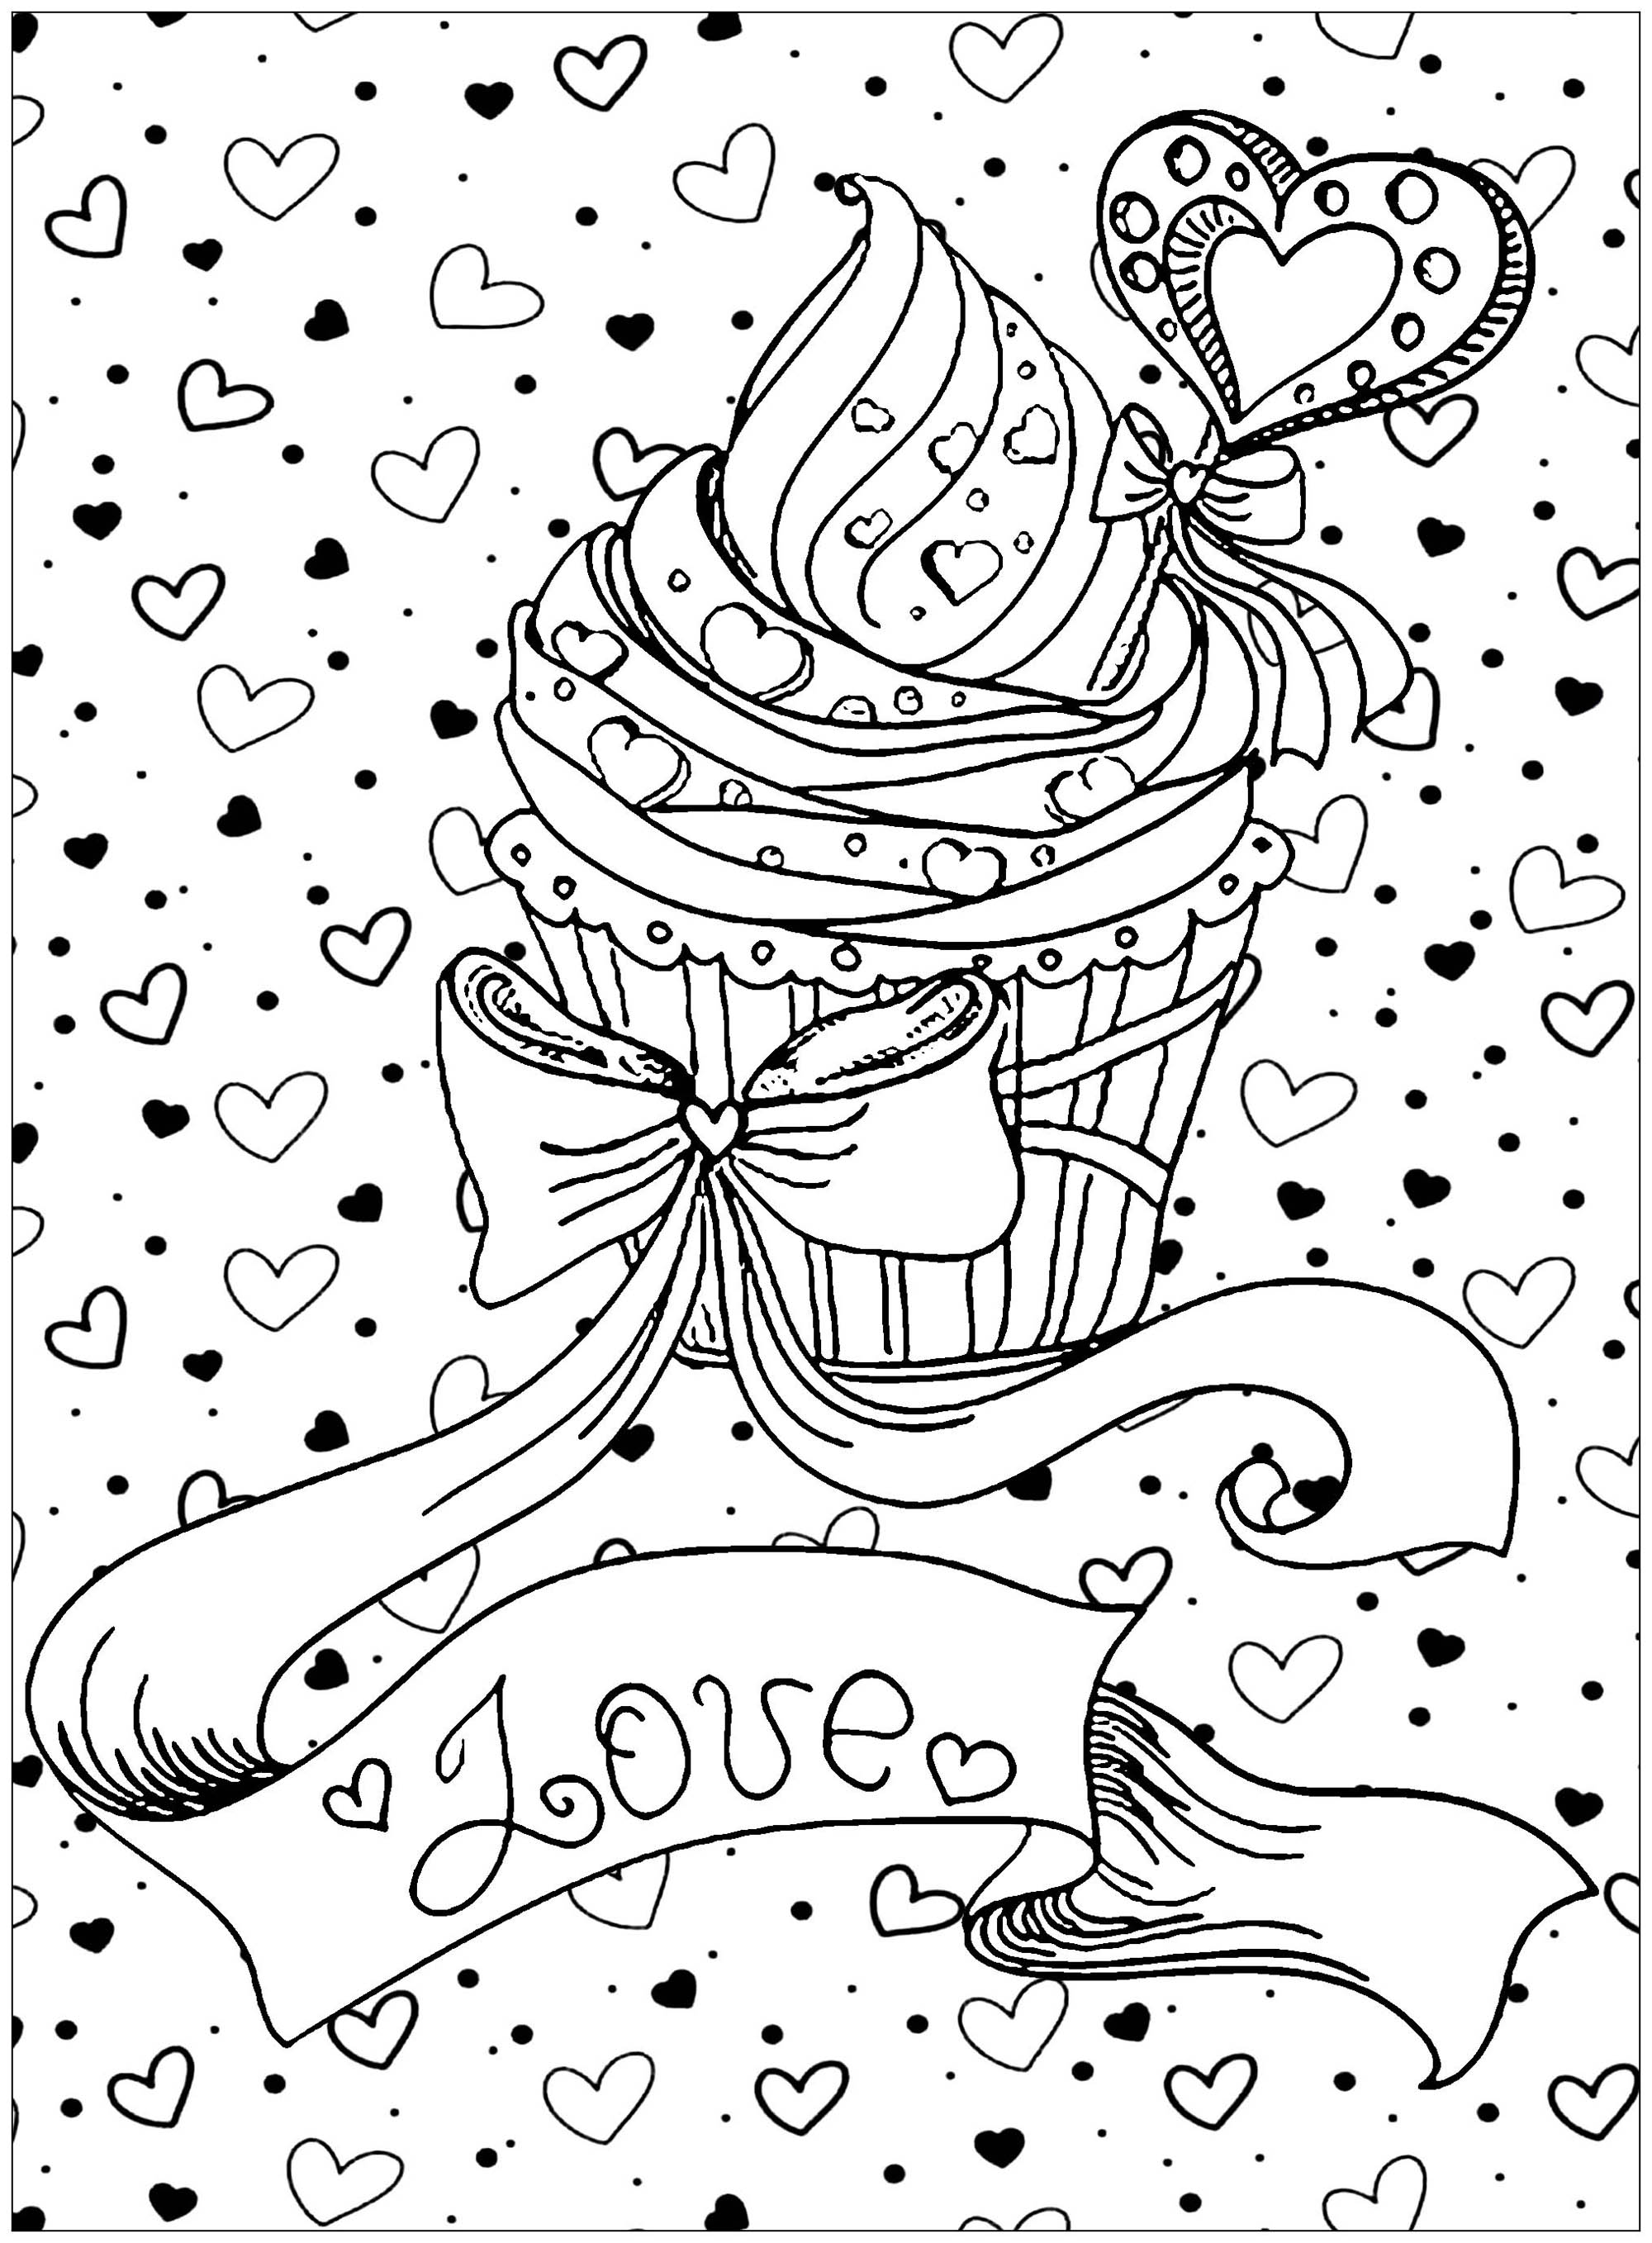 Mothers Day Coloring Pages For Adults At Getdrawings